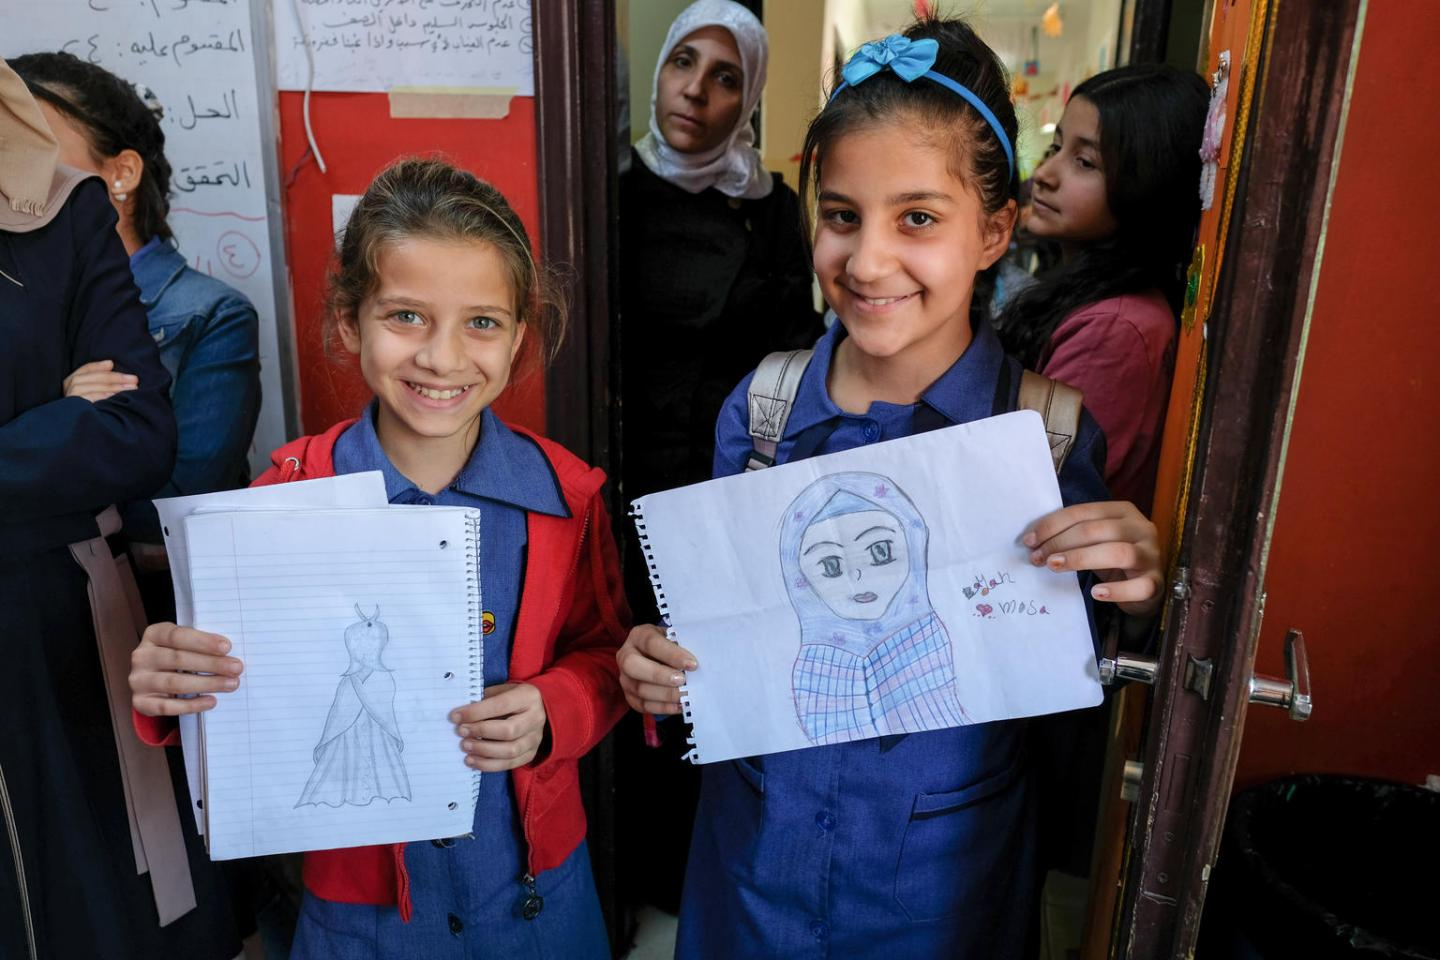 Two girls showing their drawings